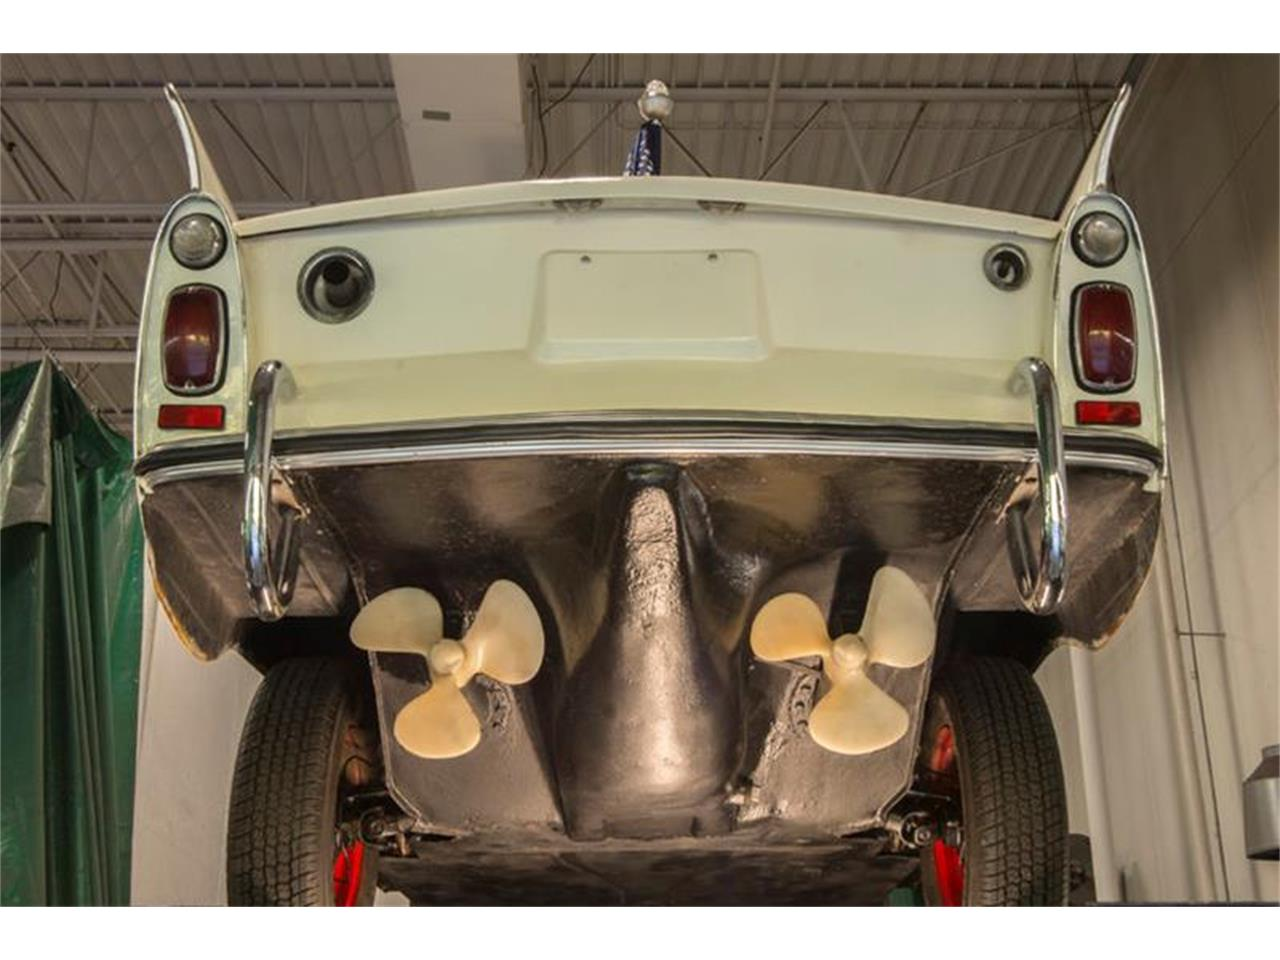 Large Picture of Classic 1967 Amphicar 770 located in Rogers Minnesota - $54,950.00 - M6UC